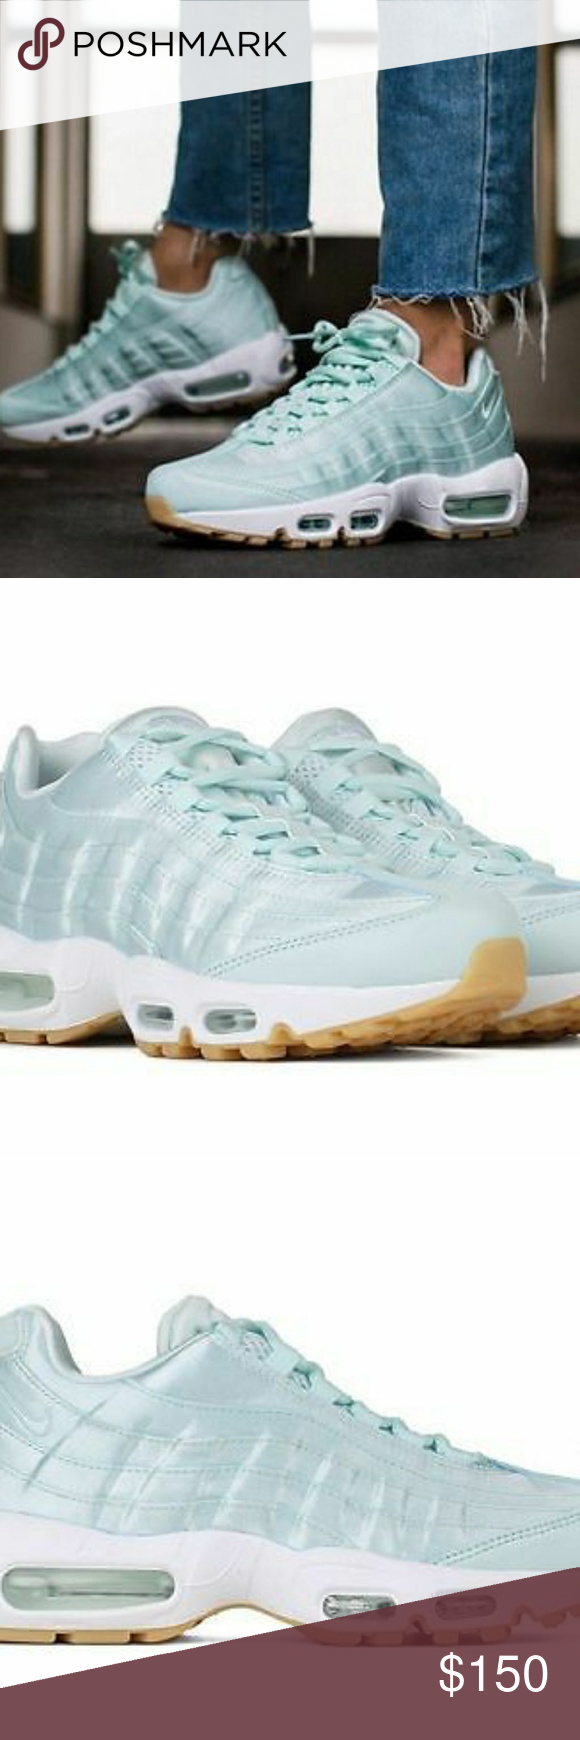 59c1dcf67ee2 Nike Air Max 95 WQS Satin Fiberglass Size 6 Nike Air Max 95 WQS Satin Fiberglass  White Gum Yellow 919491-301 Women Size 6 Brand new with out box Nike Shoes  ...